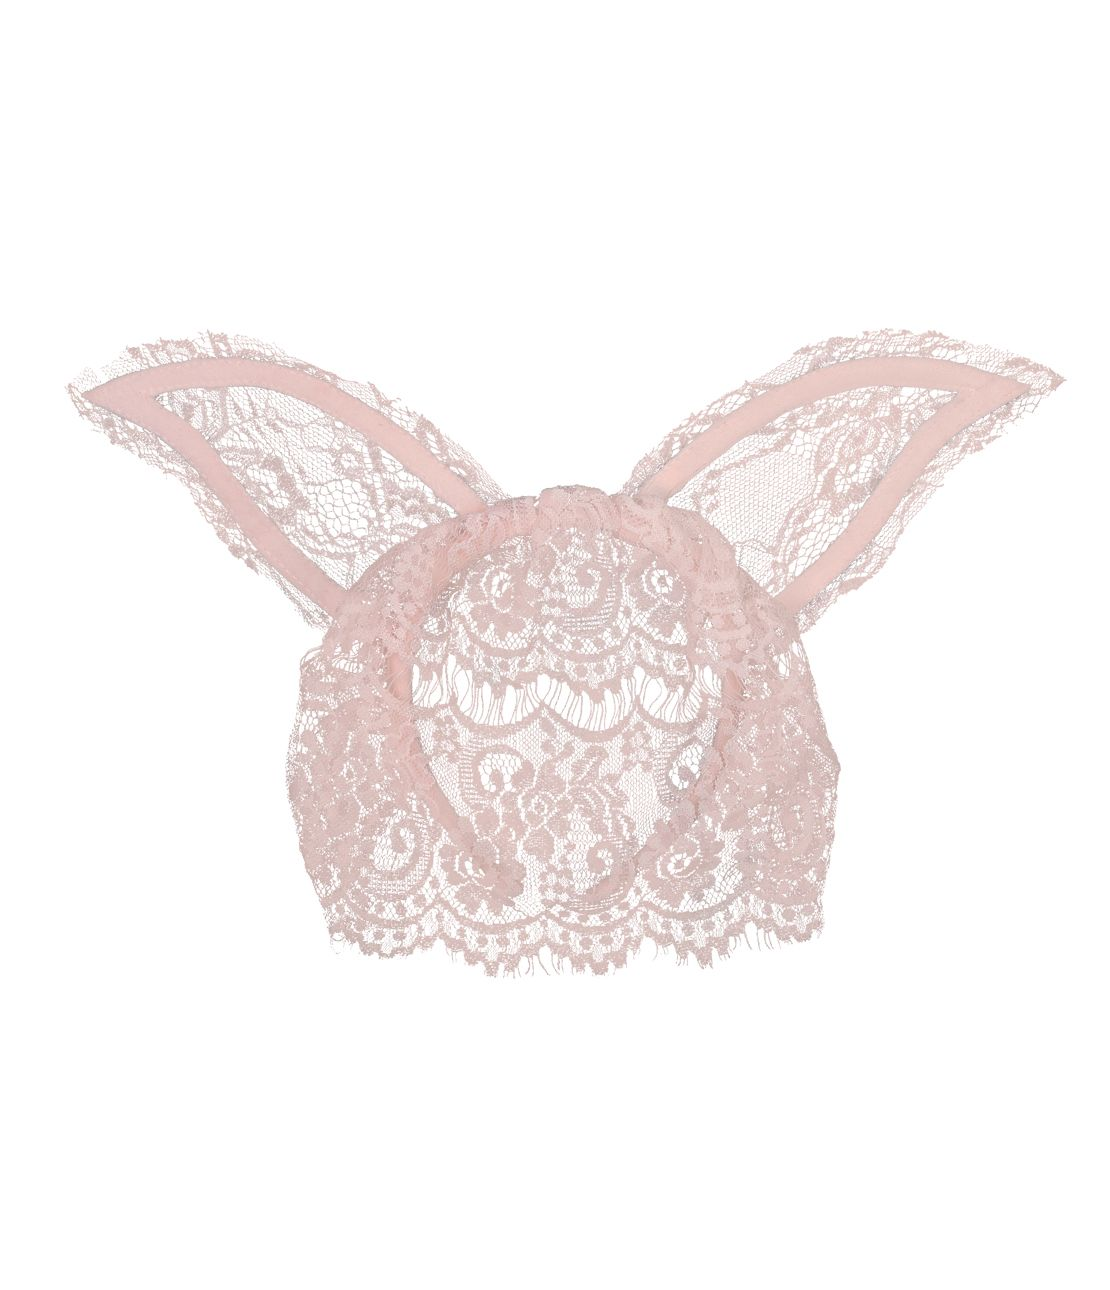 Rabbit veil headband